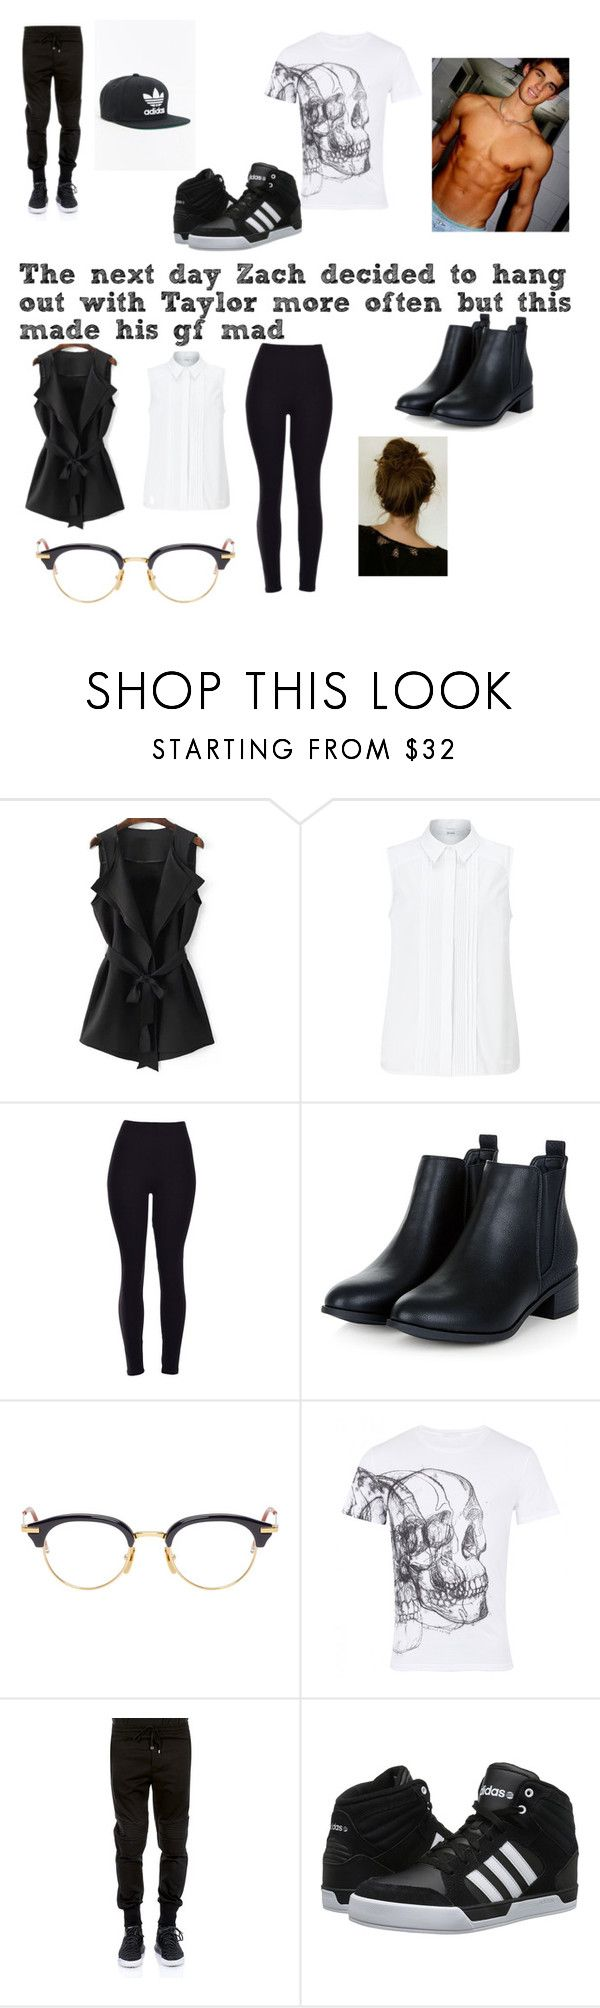 """He was helping her out by passing out her student body president pins"" by maryjsullivan ❤ liked on Polyvore featuring John Lewis, Thom Browne, Alexander McQueen, Dolce&Gabbana and adidas"